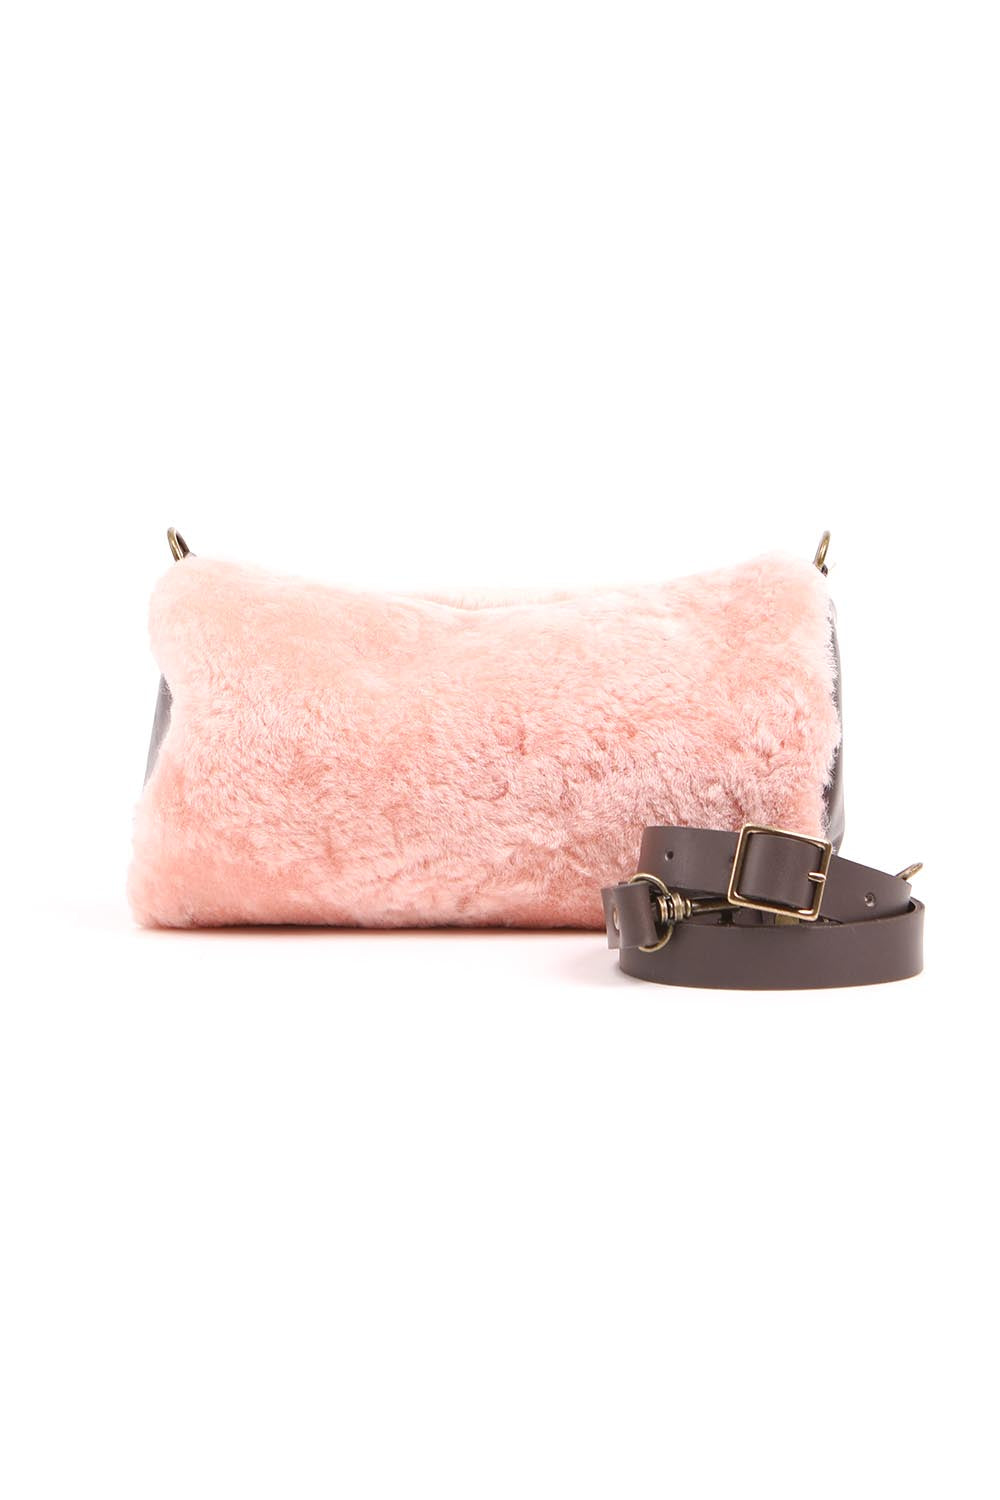 Saint Germain Shearling Bag